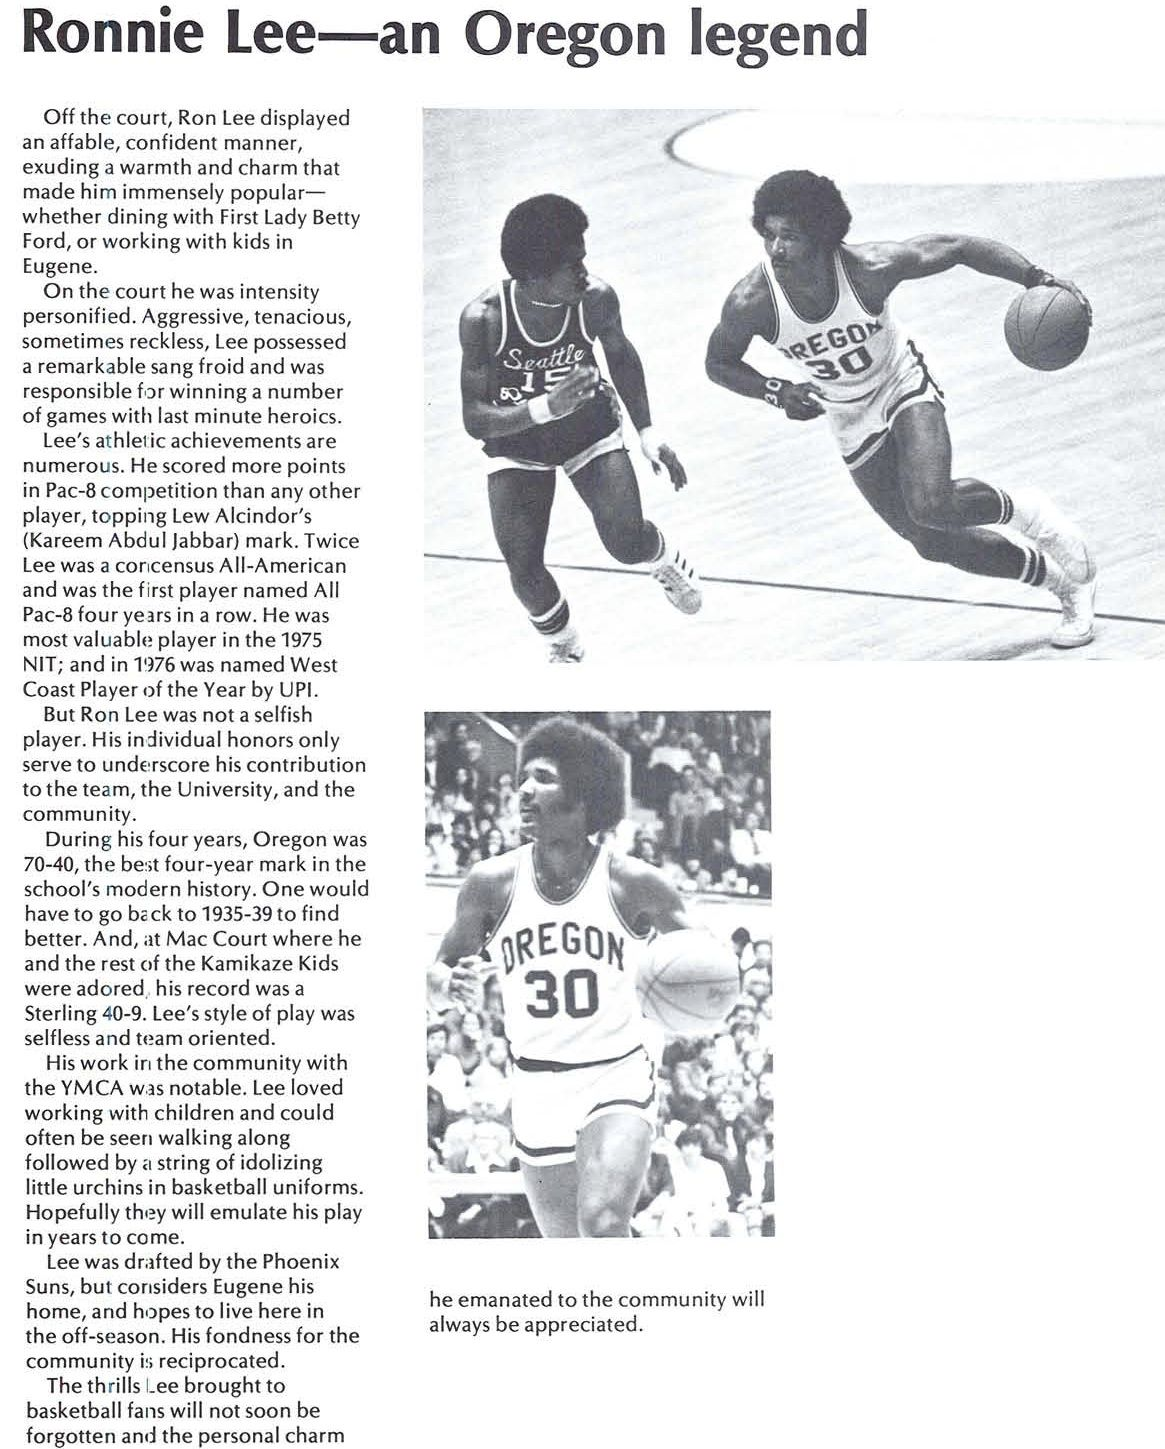 Profile of Oregon basketball player Ronnie Lee 1976. From the 1976 Oregana (University of Oregon yearbook). www.CampusAttic.com